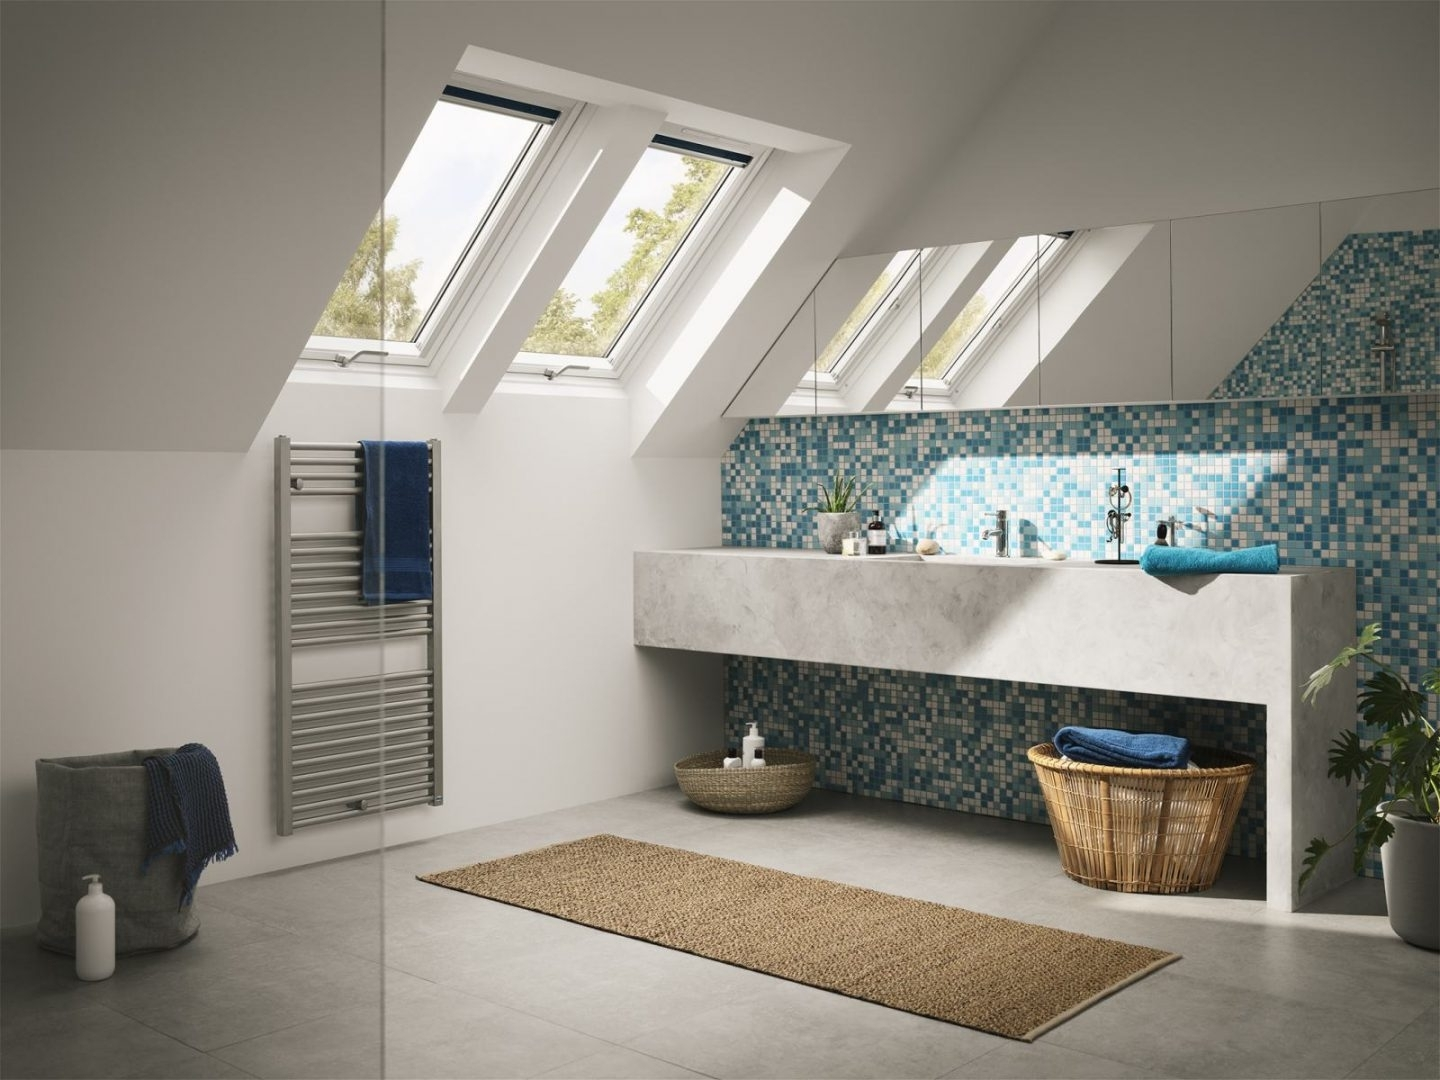 Creating A Daylight Filled And Airy Bathroom Loft Conversion Small Bathroom Loft Conversion